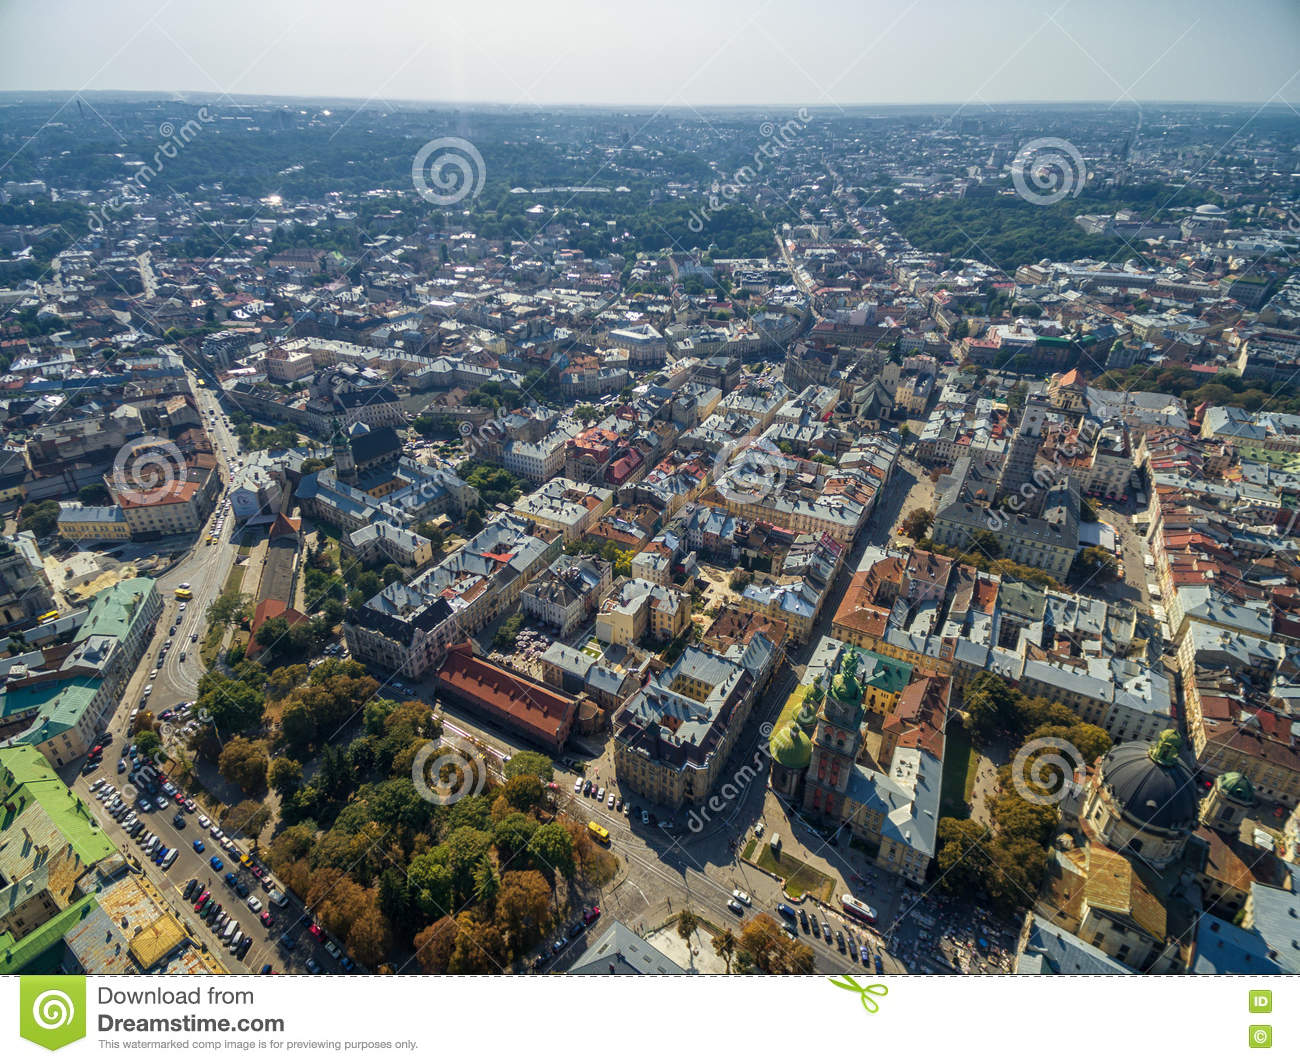 High Castle, Lviv: how to get there, history and interesting facts 57